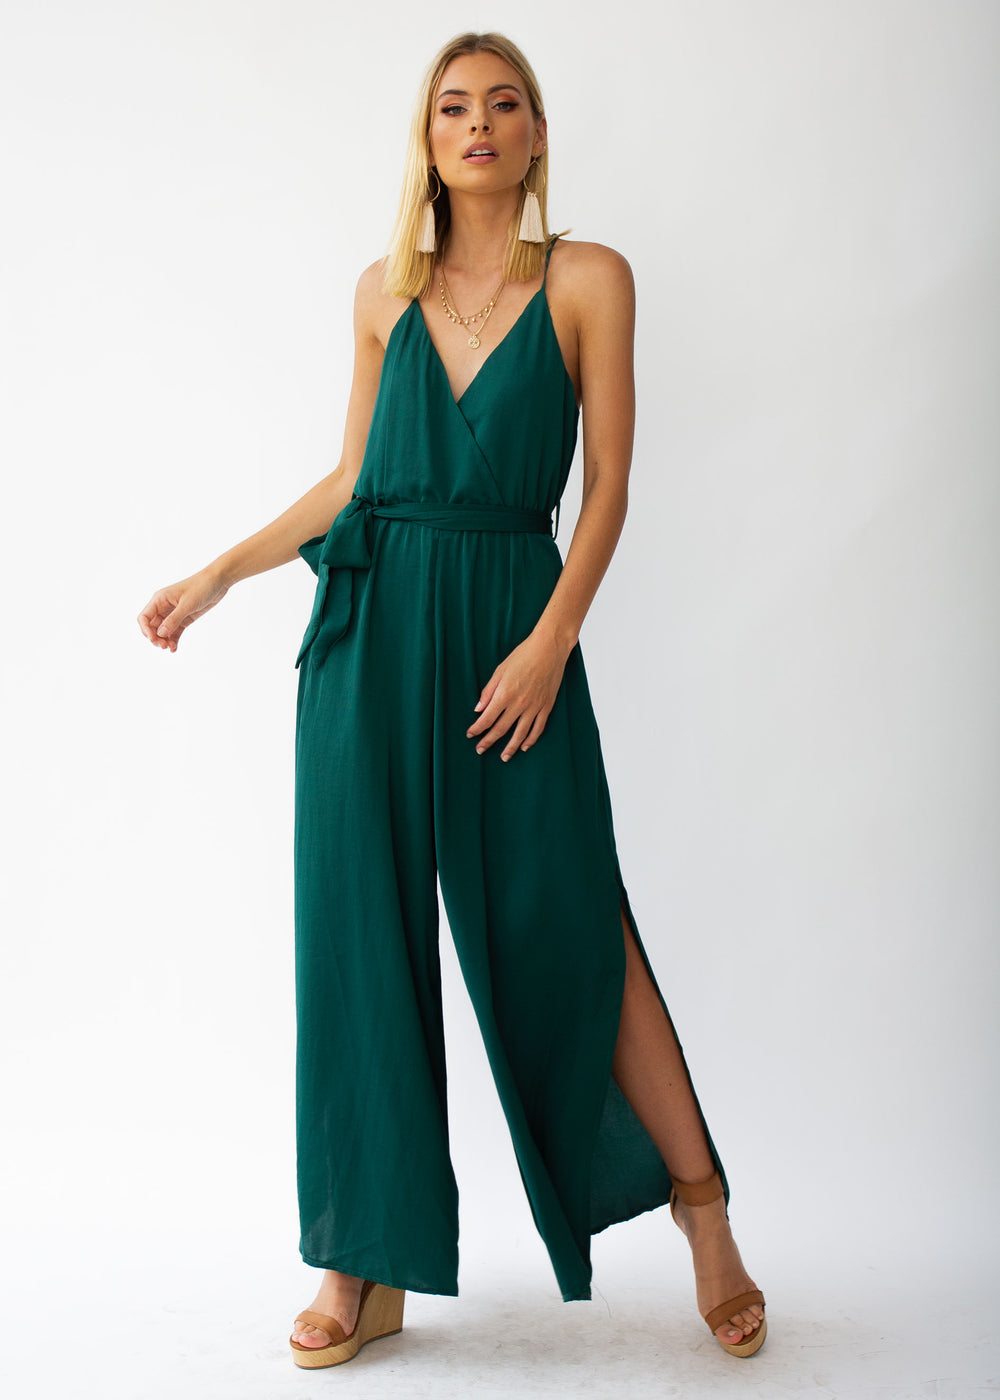 Losing Sight Pantsuit - Forest Green